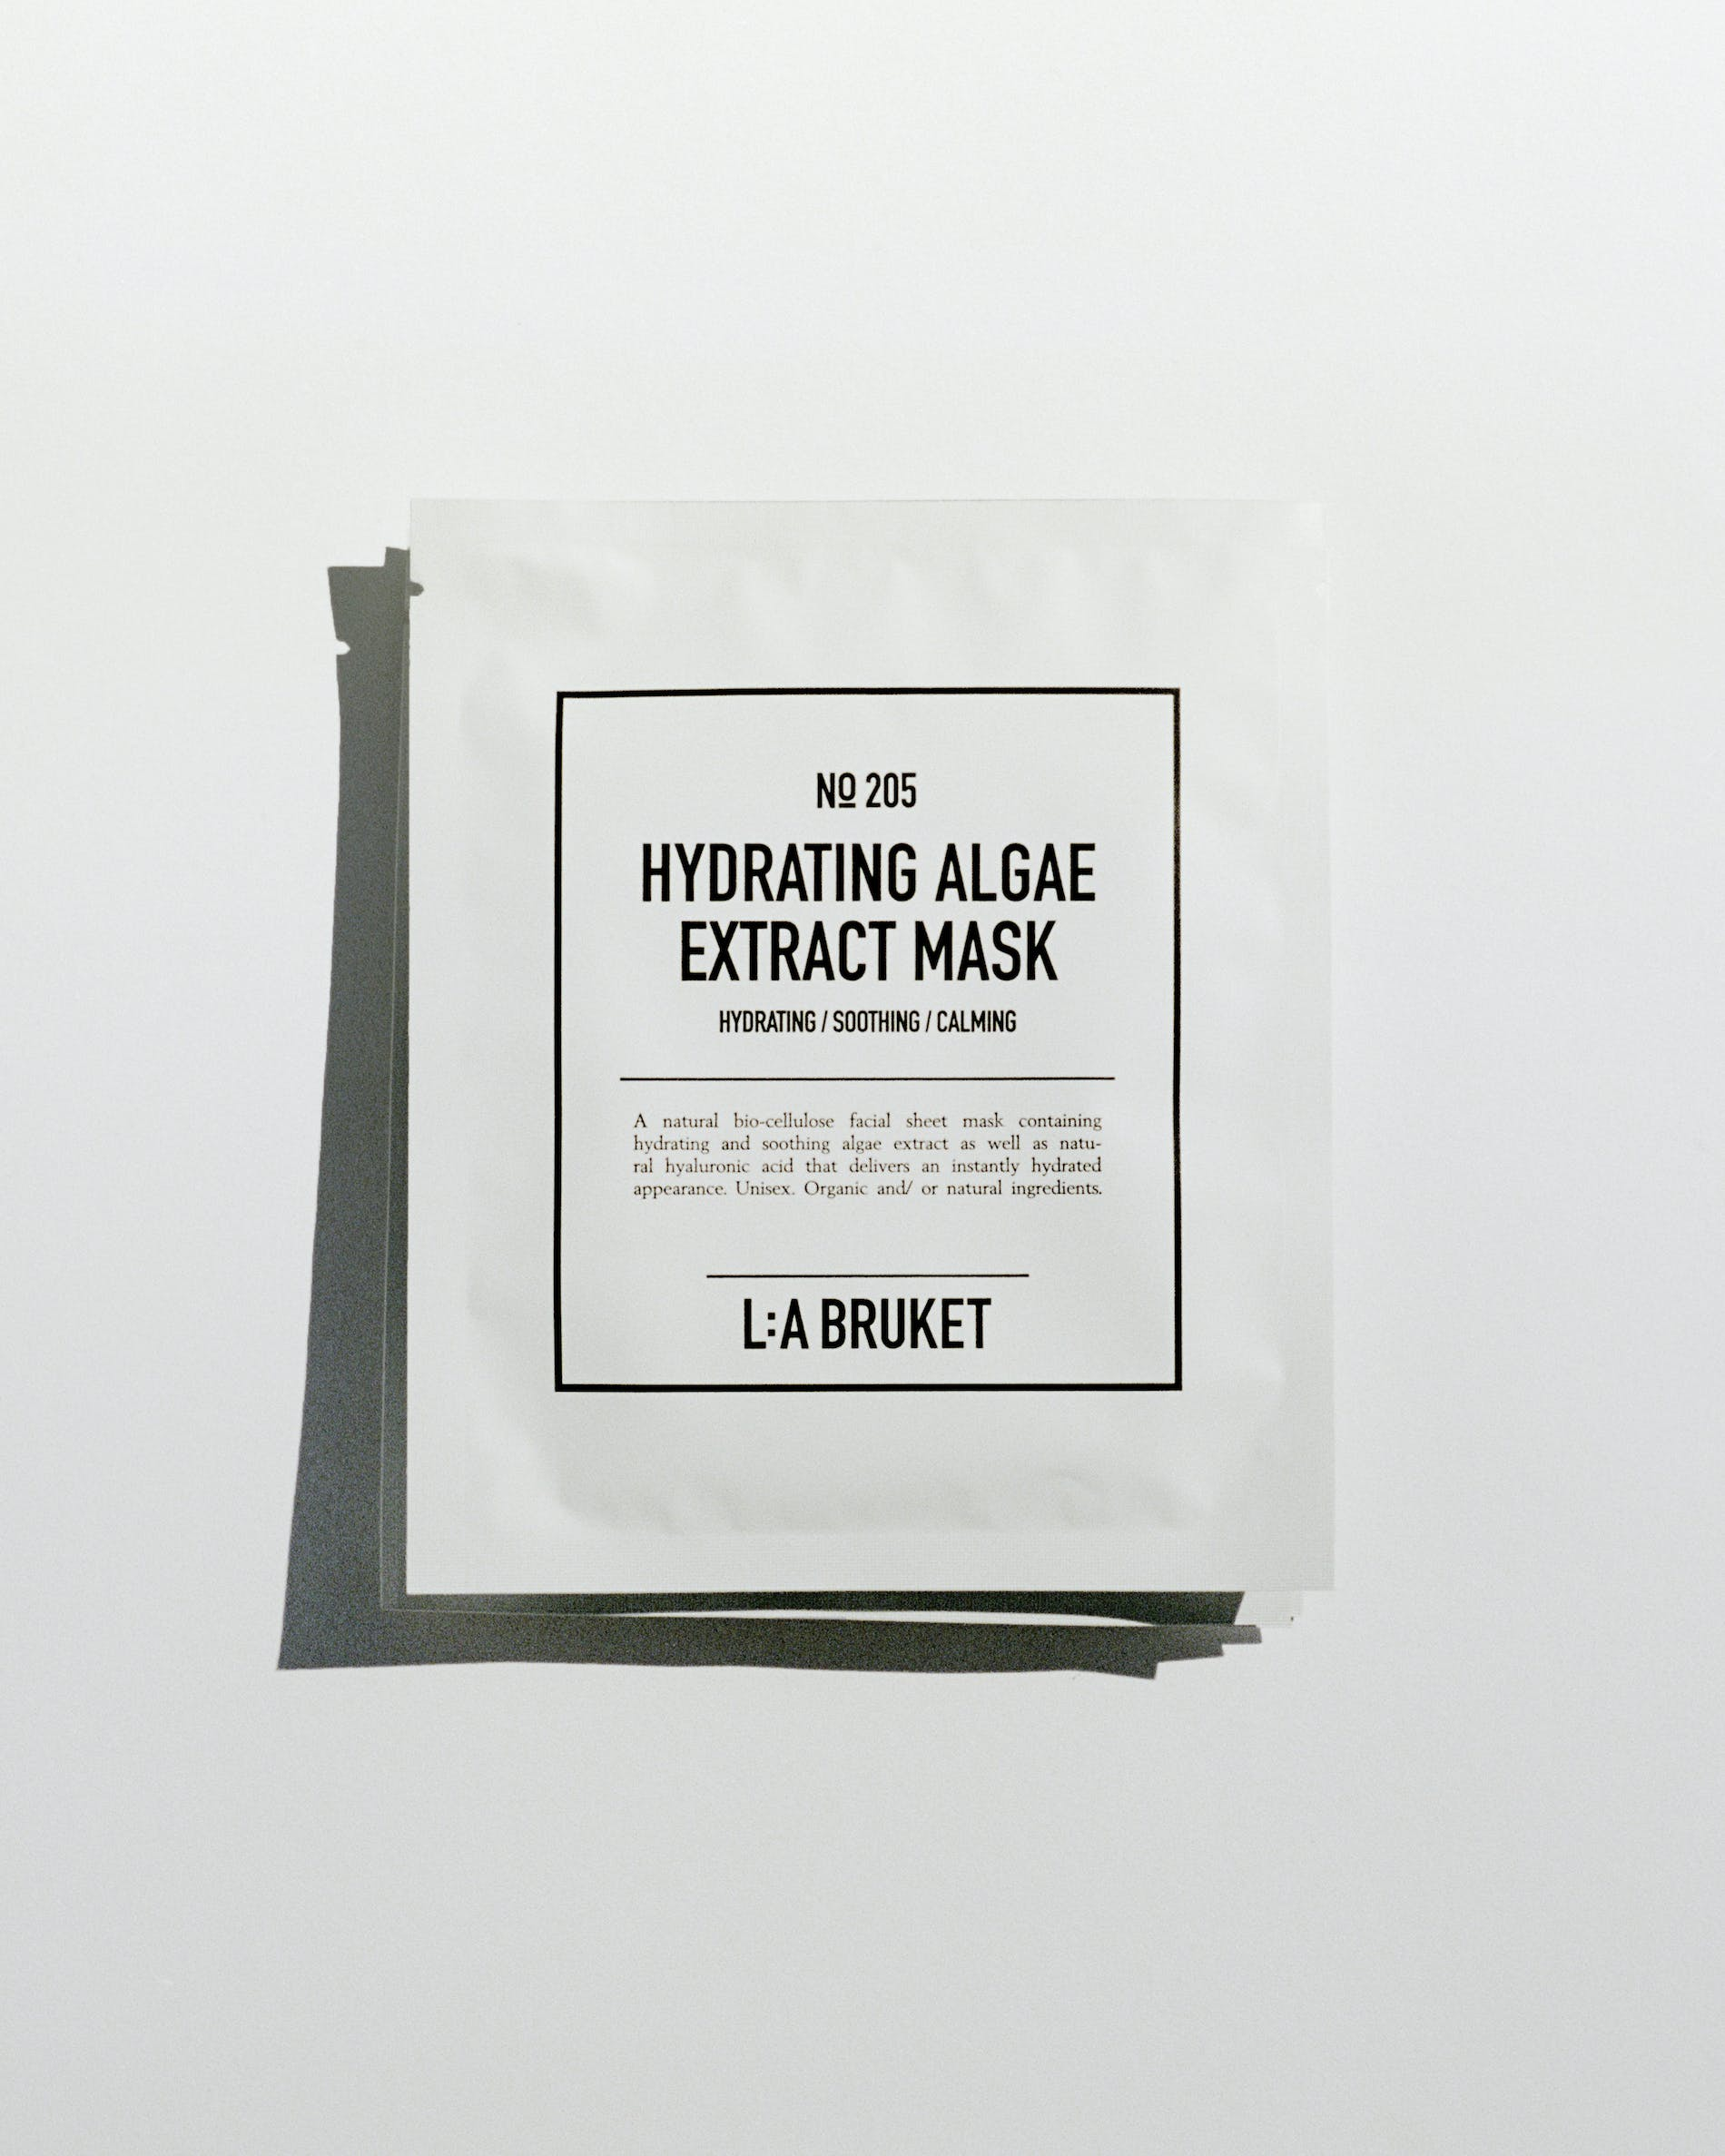 Hydrating algae extract mask